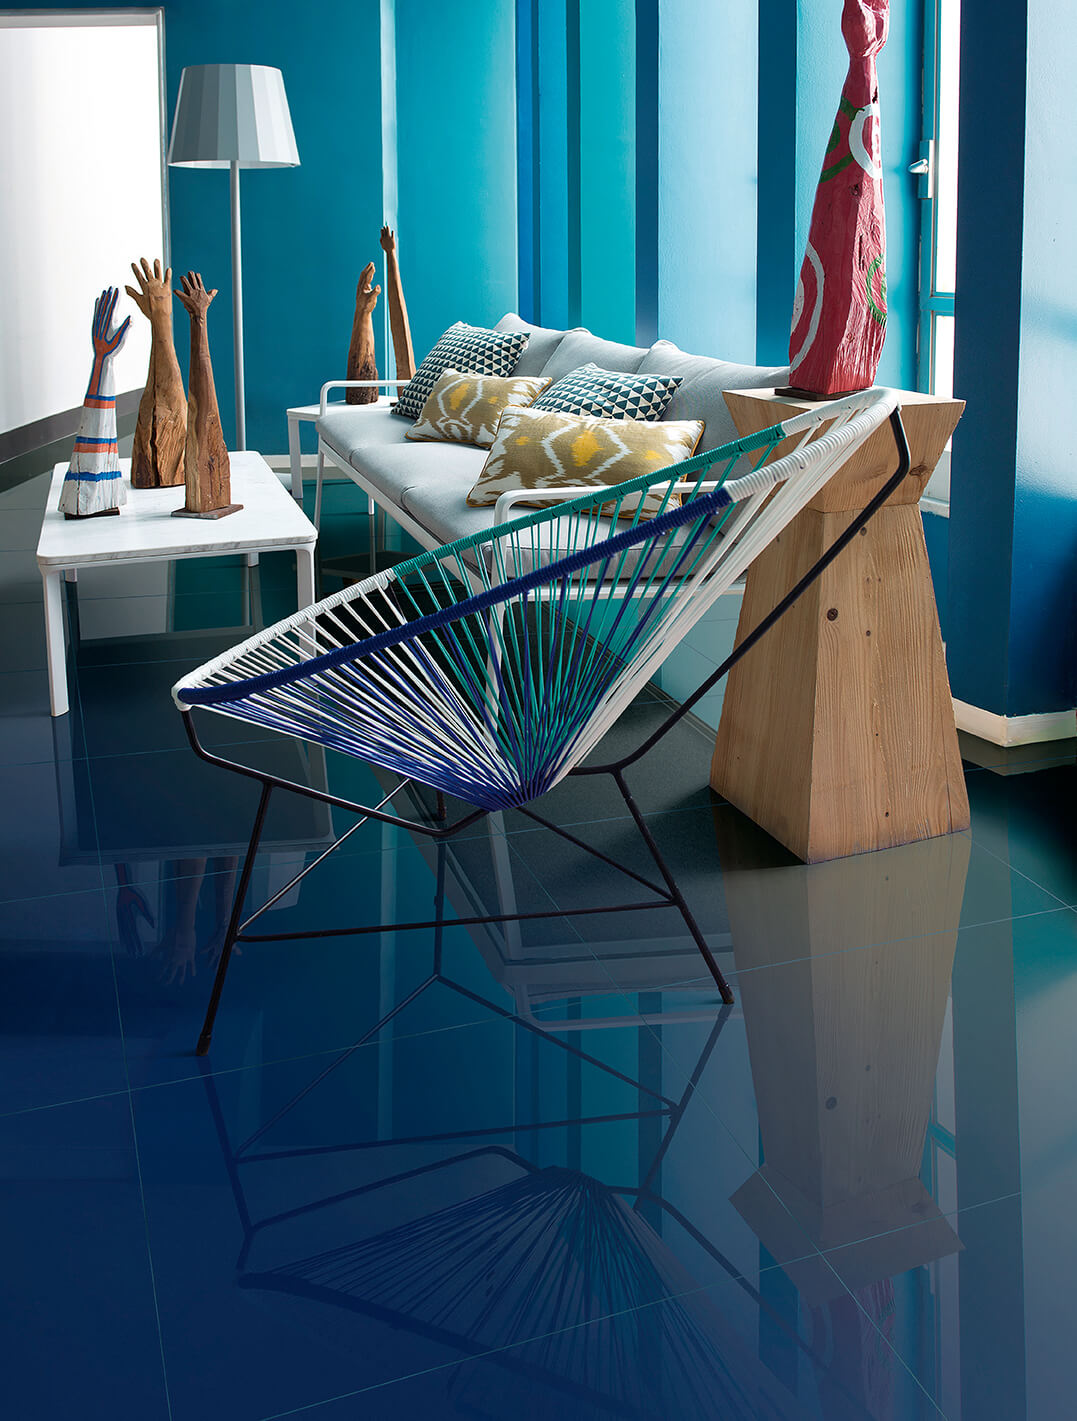 Living room with reflective blue tile flooring